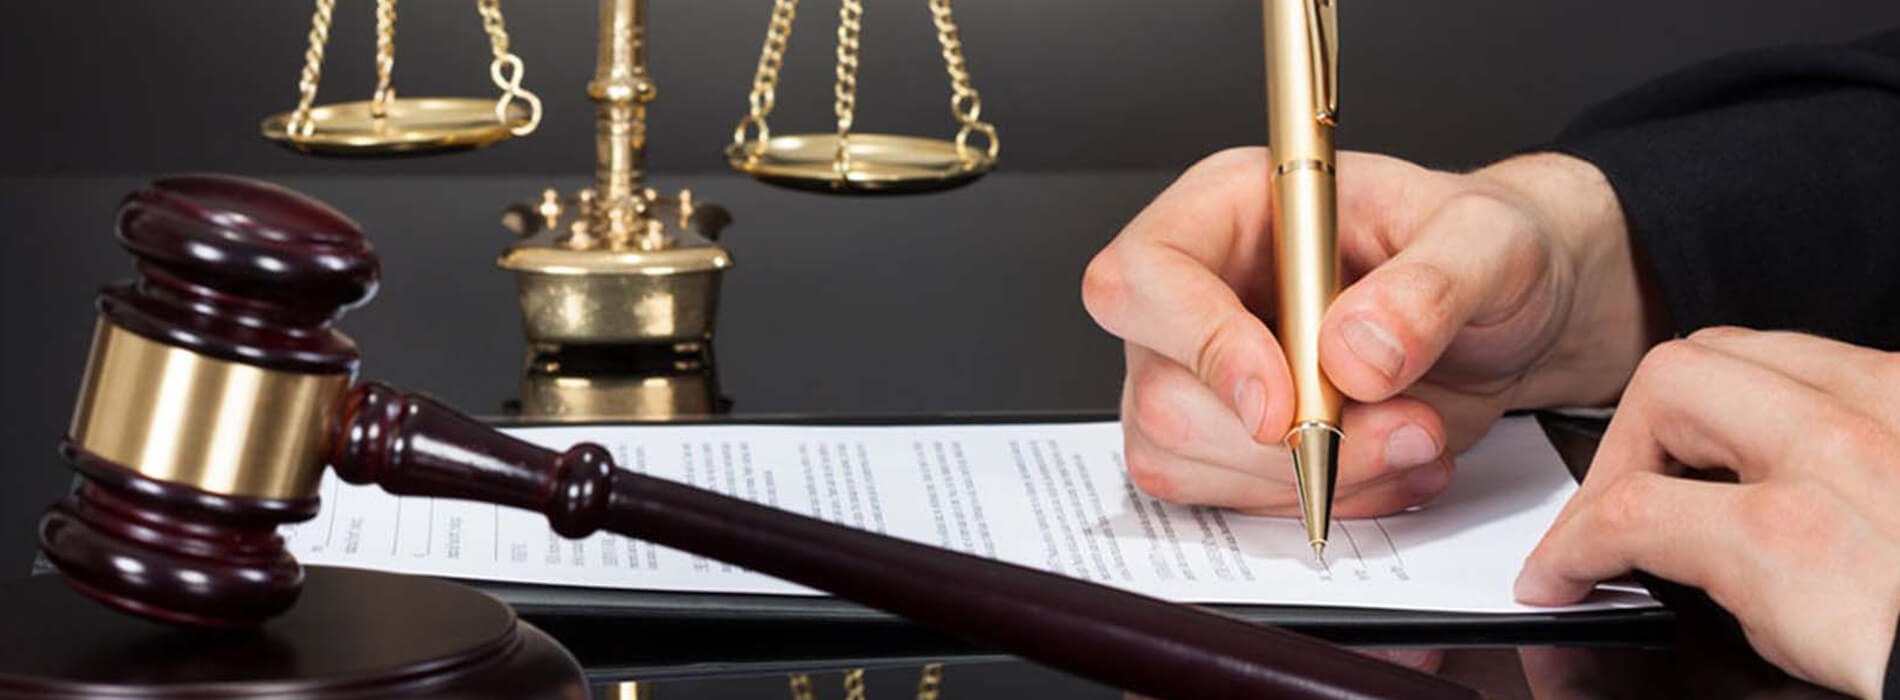 Incredible Legal/Non-Legal Interpreting Services